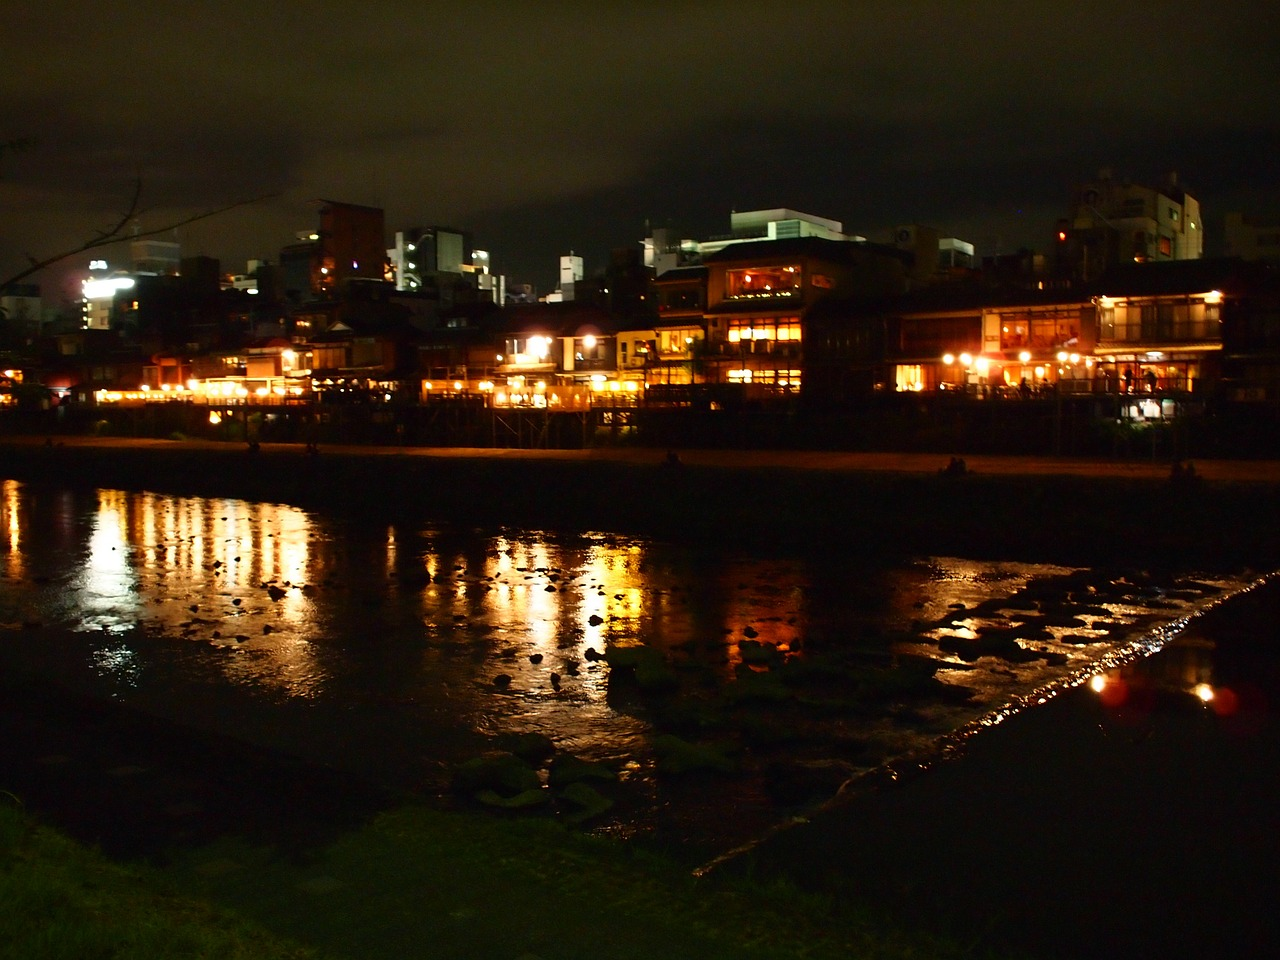 kyoto night kamogawa free photo